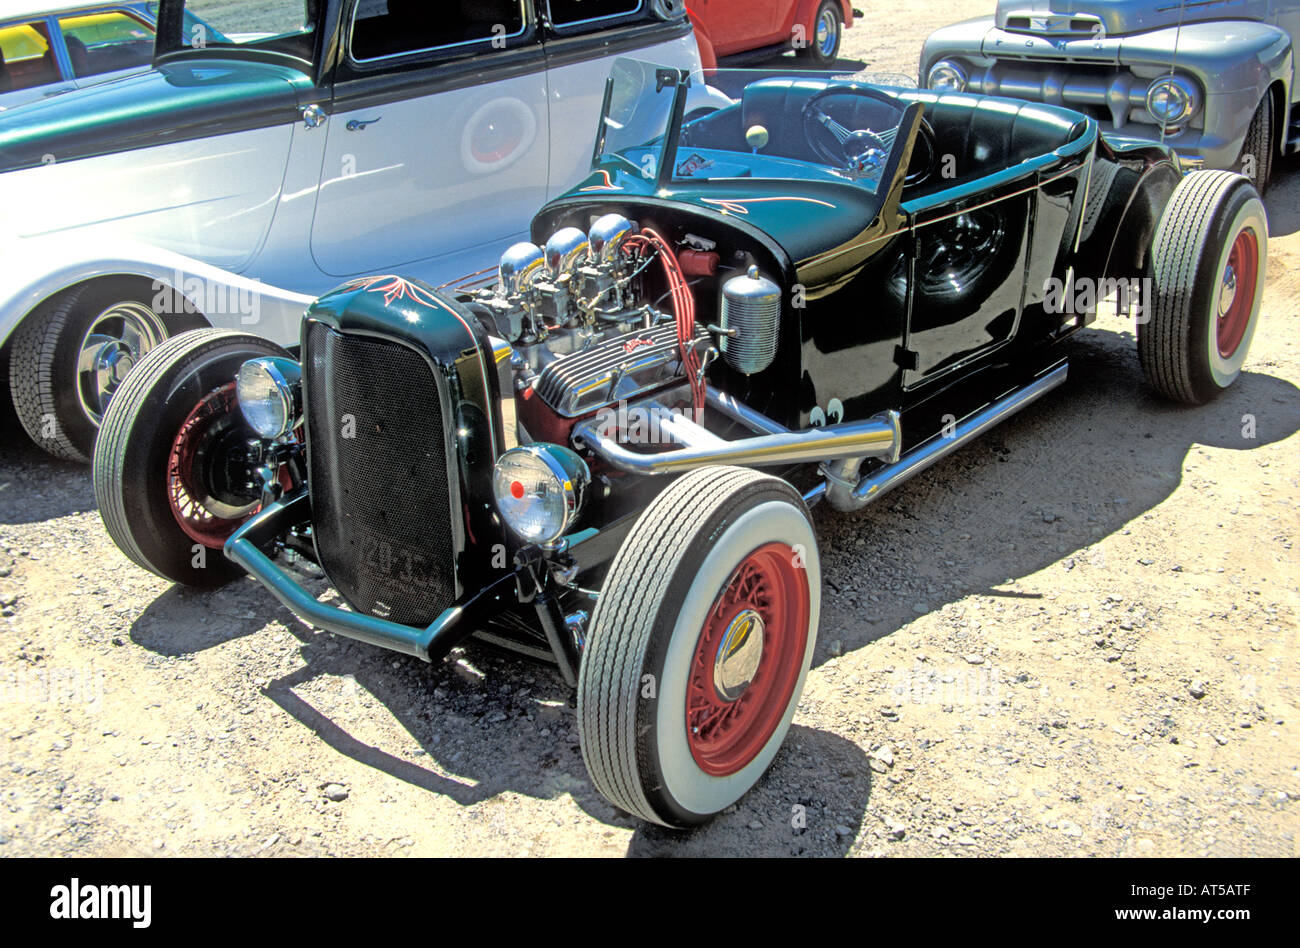 Black with red wheels open top hot rod Stock Photo: 9261326 - Alamy